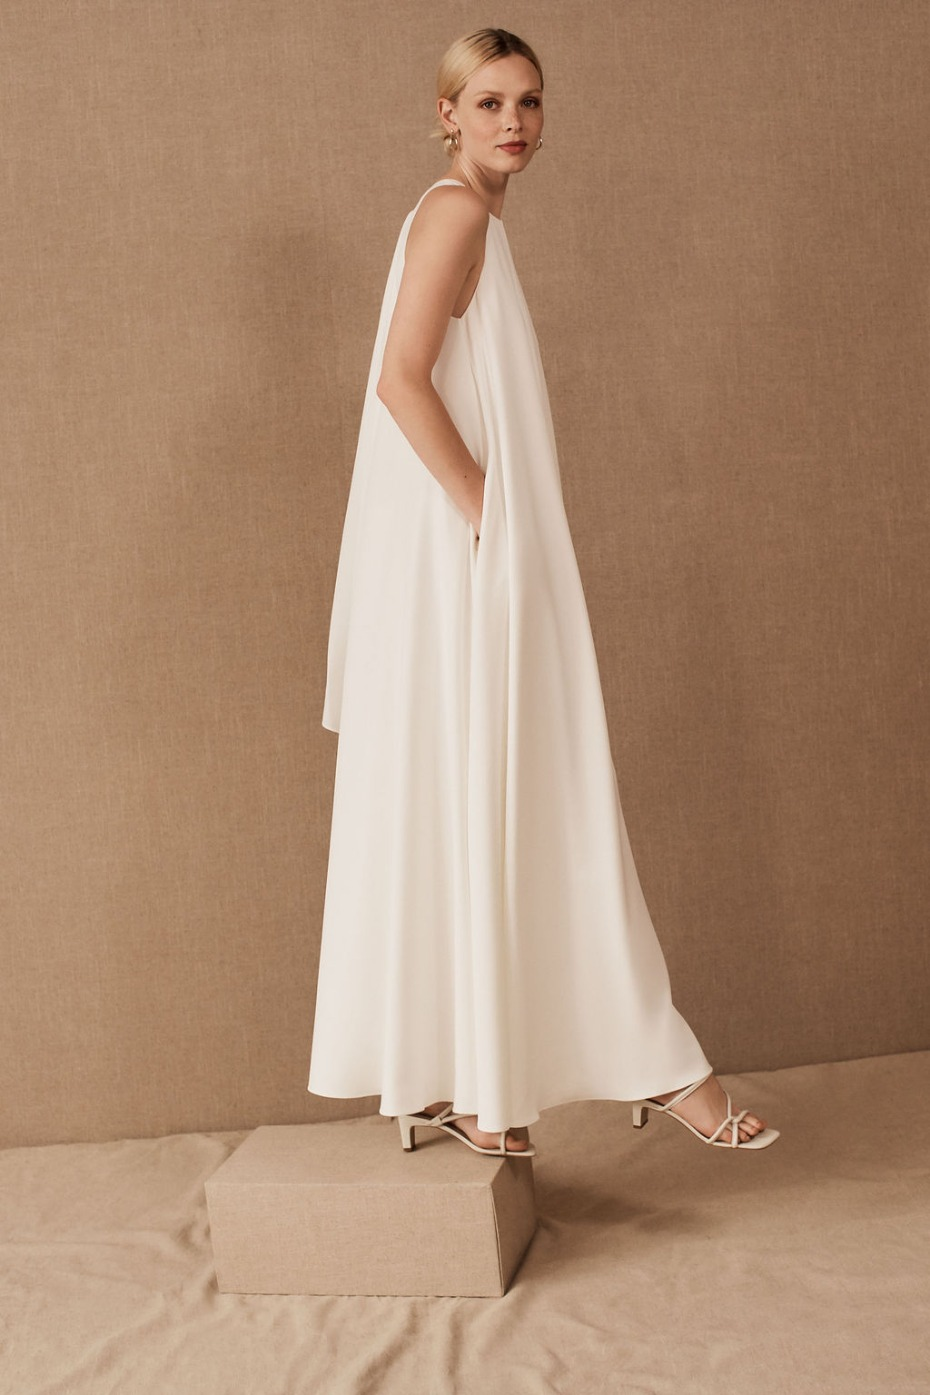 BHLDN's New Spring 2021 Collection Honors a Strong, New Way to Wedding